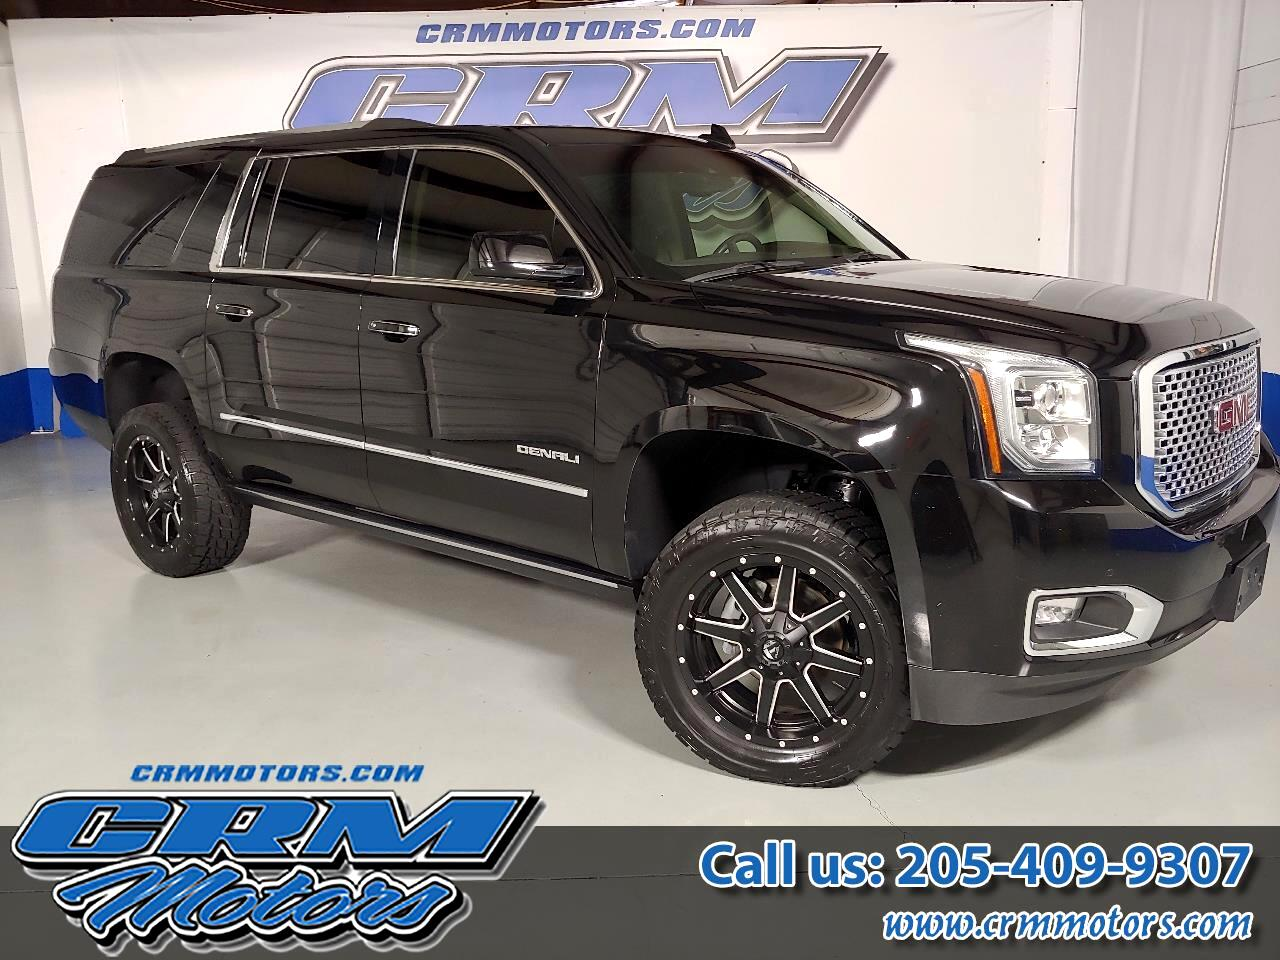 2015 GMC Yukon XL 4WD, DENALI, LIFT, FUEL WHEELS, LEATHER, NAV, SUNR